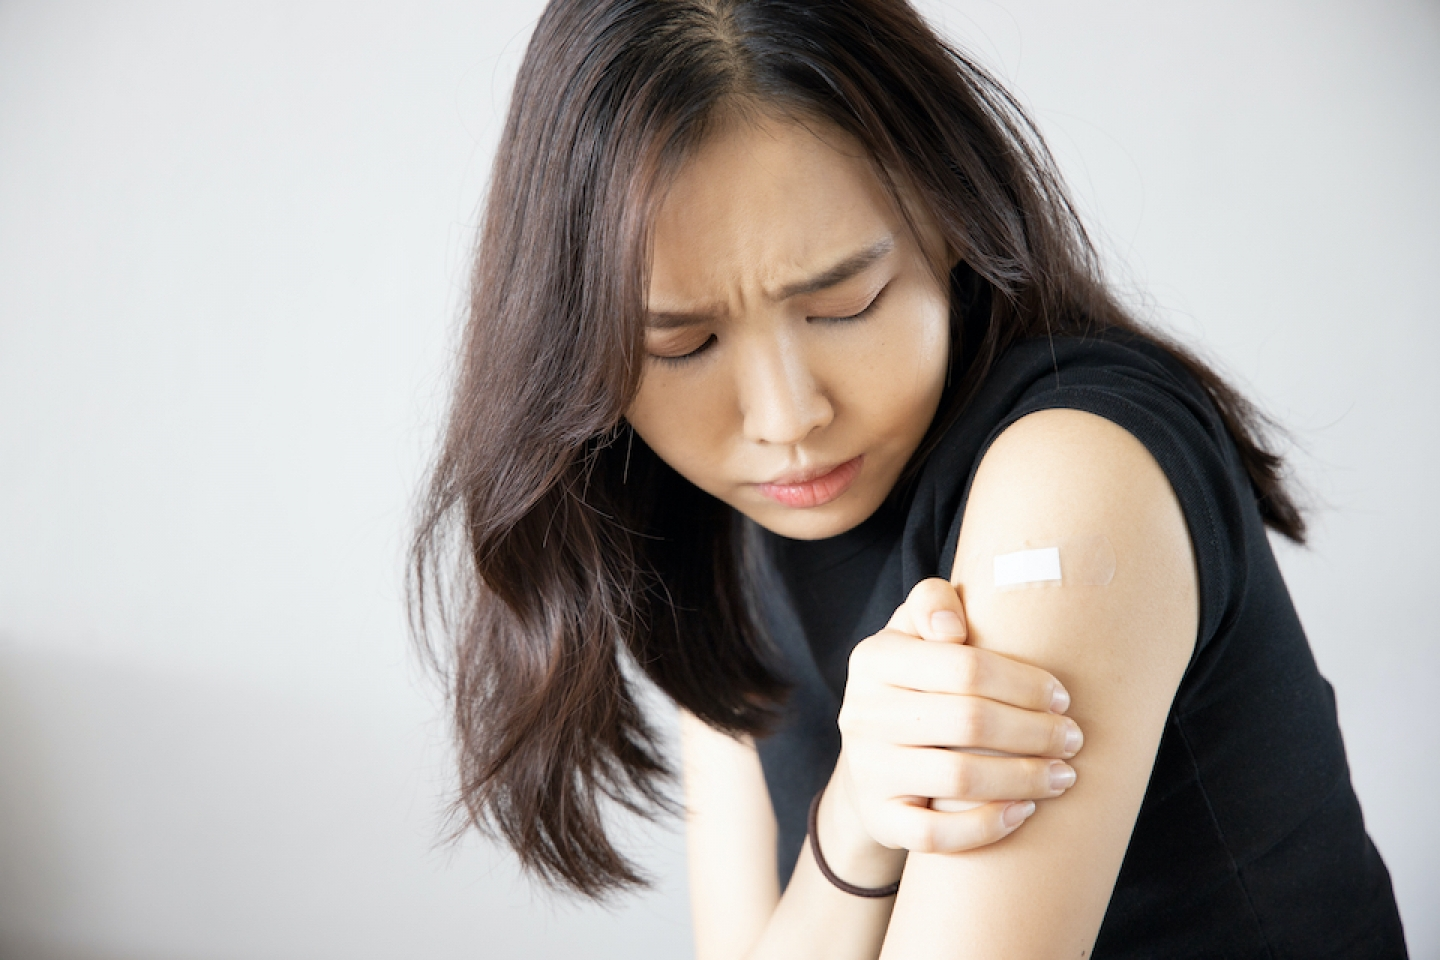 woman with sore arm near vaccine injection site